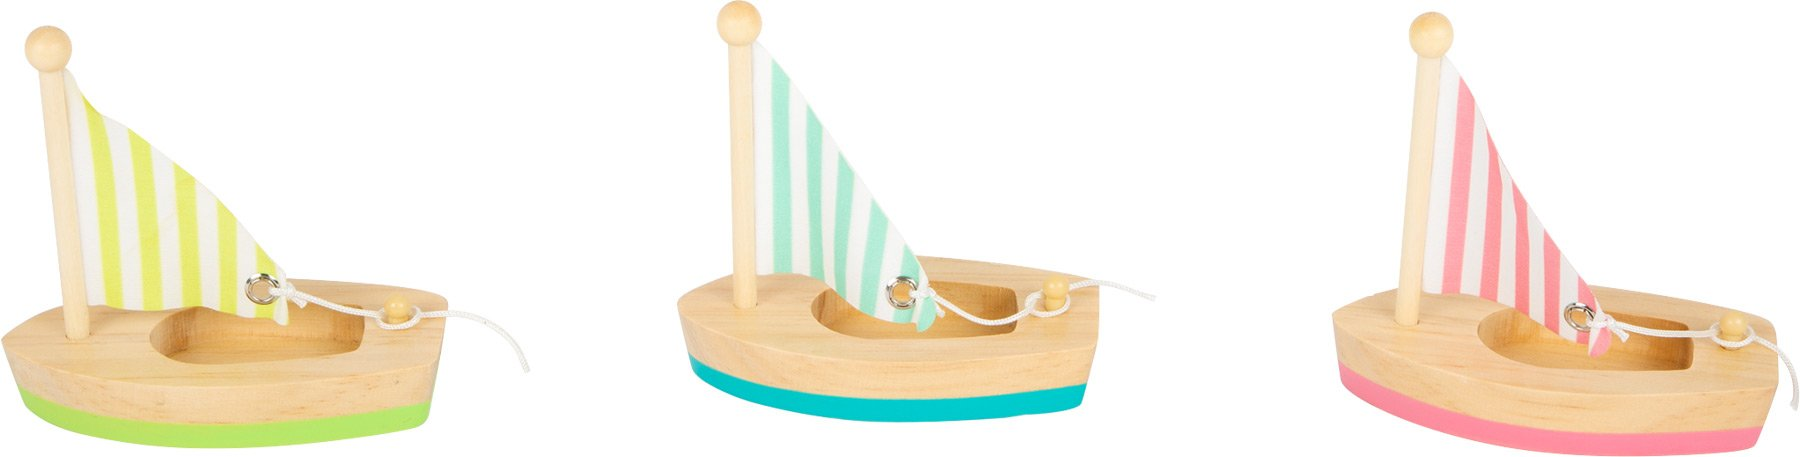 Water Toy Sailboats by Small Foot